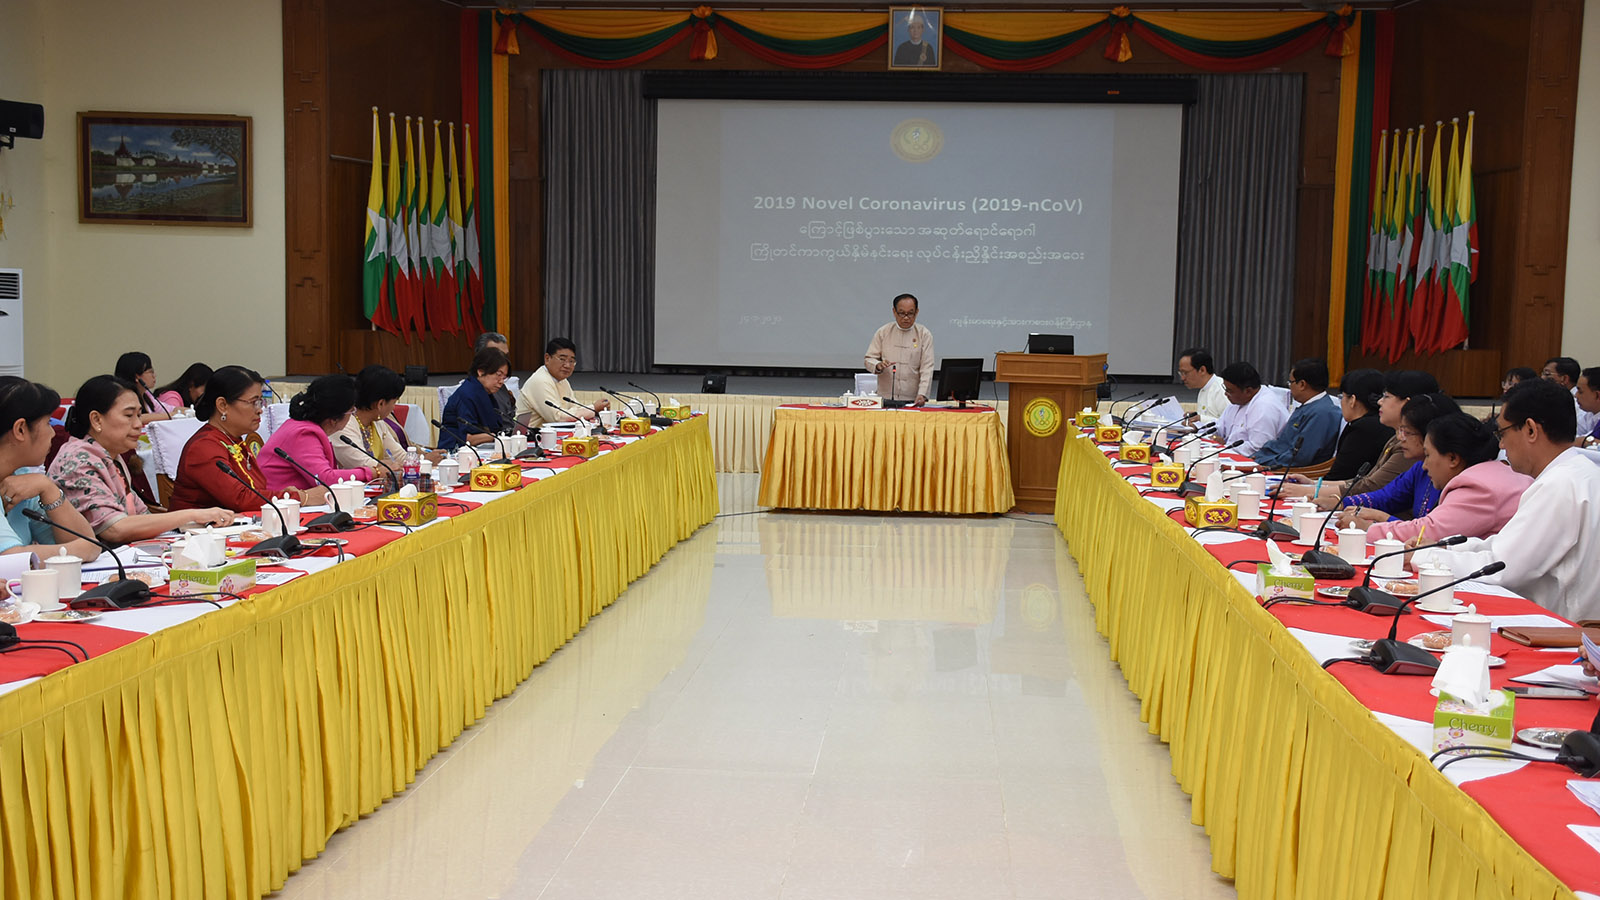 Union Minister Dr Myint Htwe addresses the work coordination meeting for prevention 2019 Novel Coronavirus (2019 nCoV) in Nay Pyi Taw yesterday. Photo: MNA